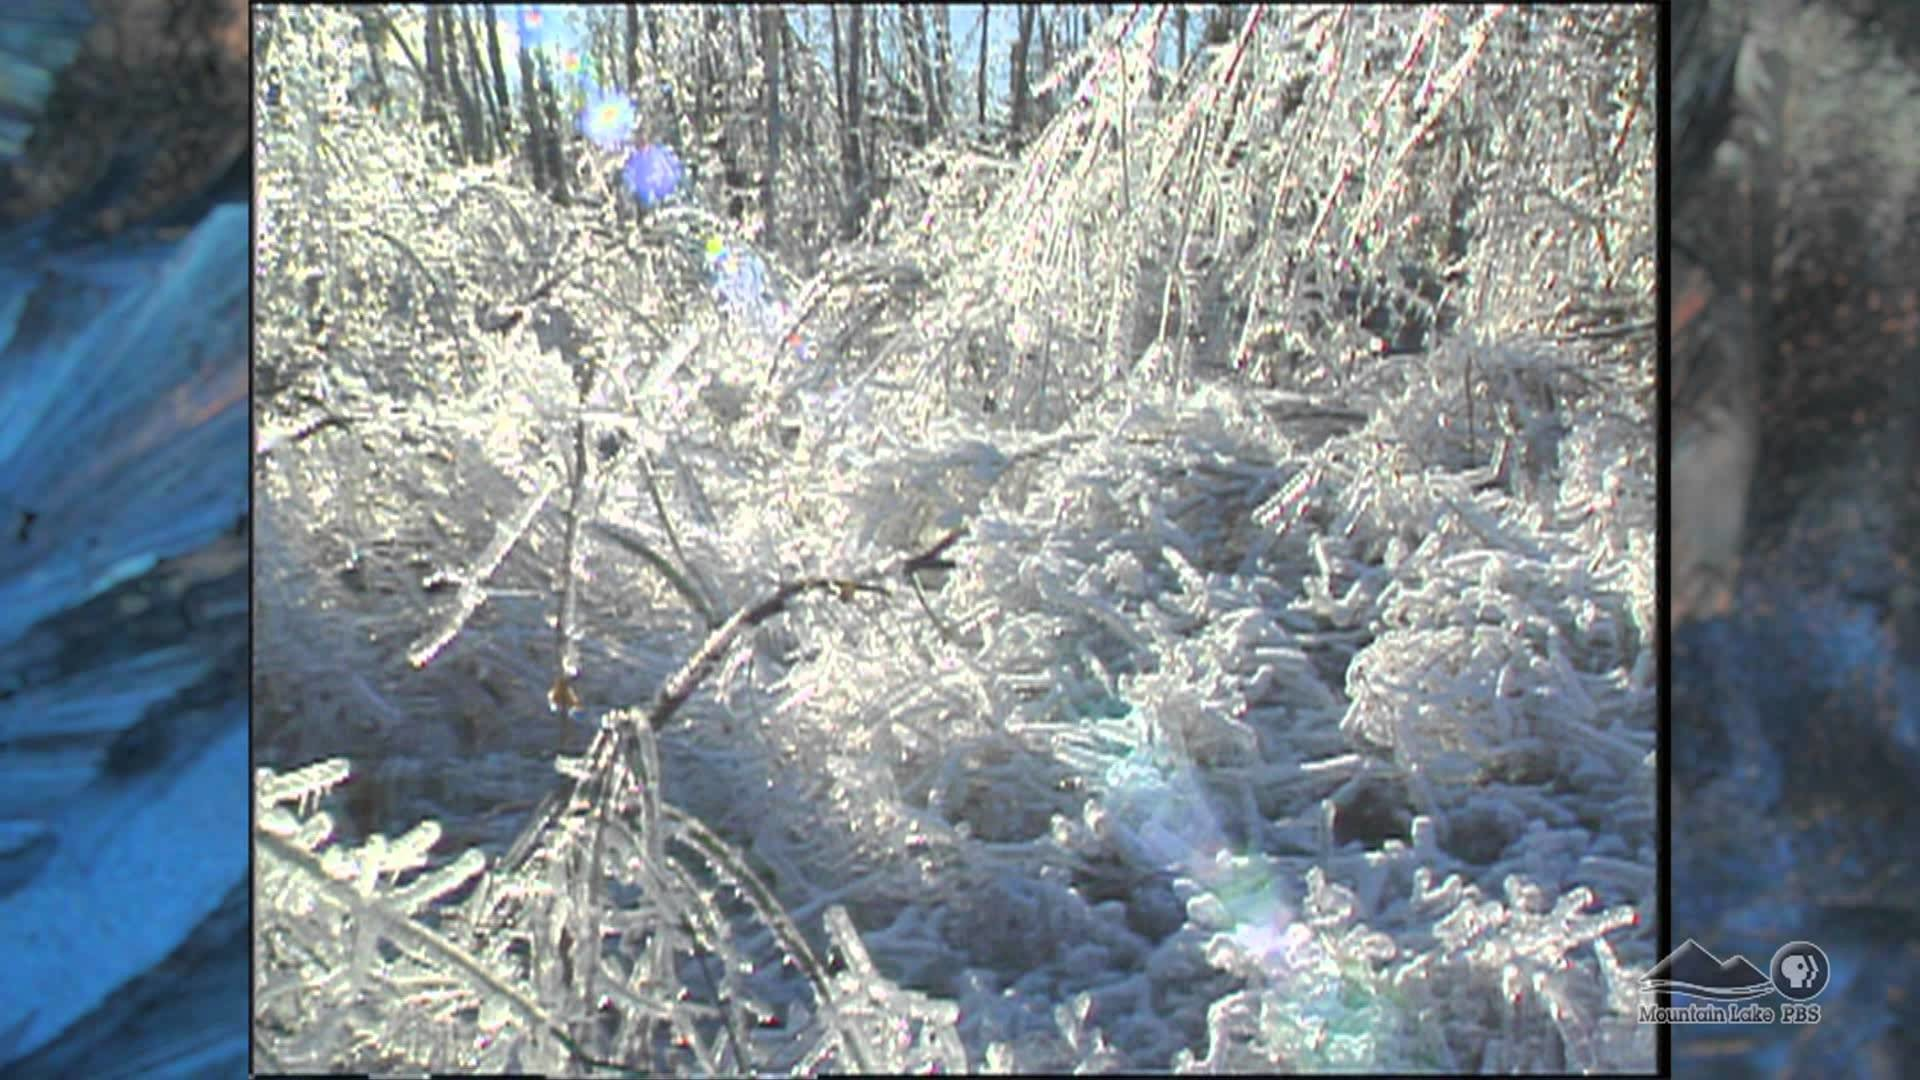 1920x1080 Remembering the 1998 Ice Storm (2013 Special Broadcast) – Mountain Lake PBS